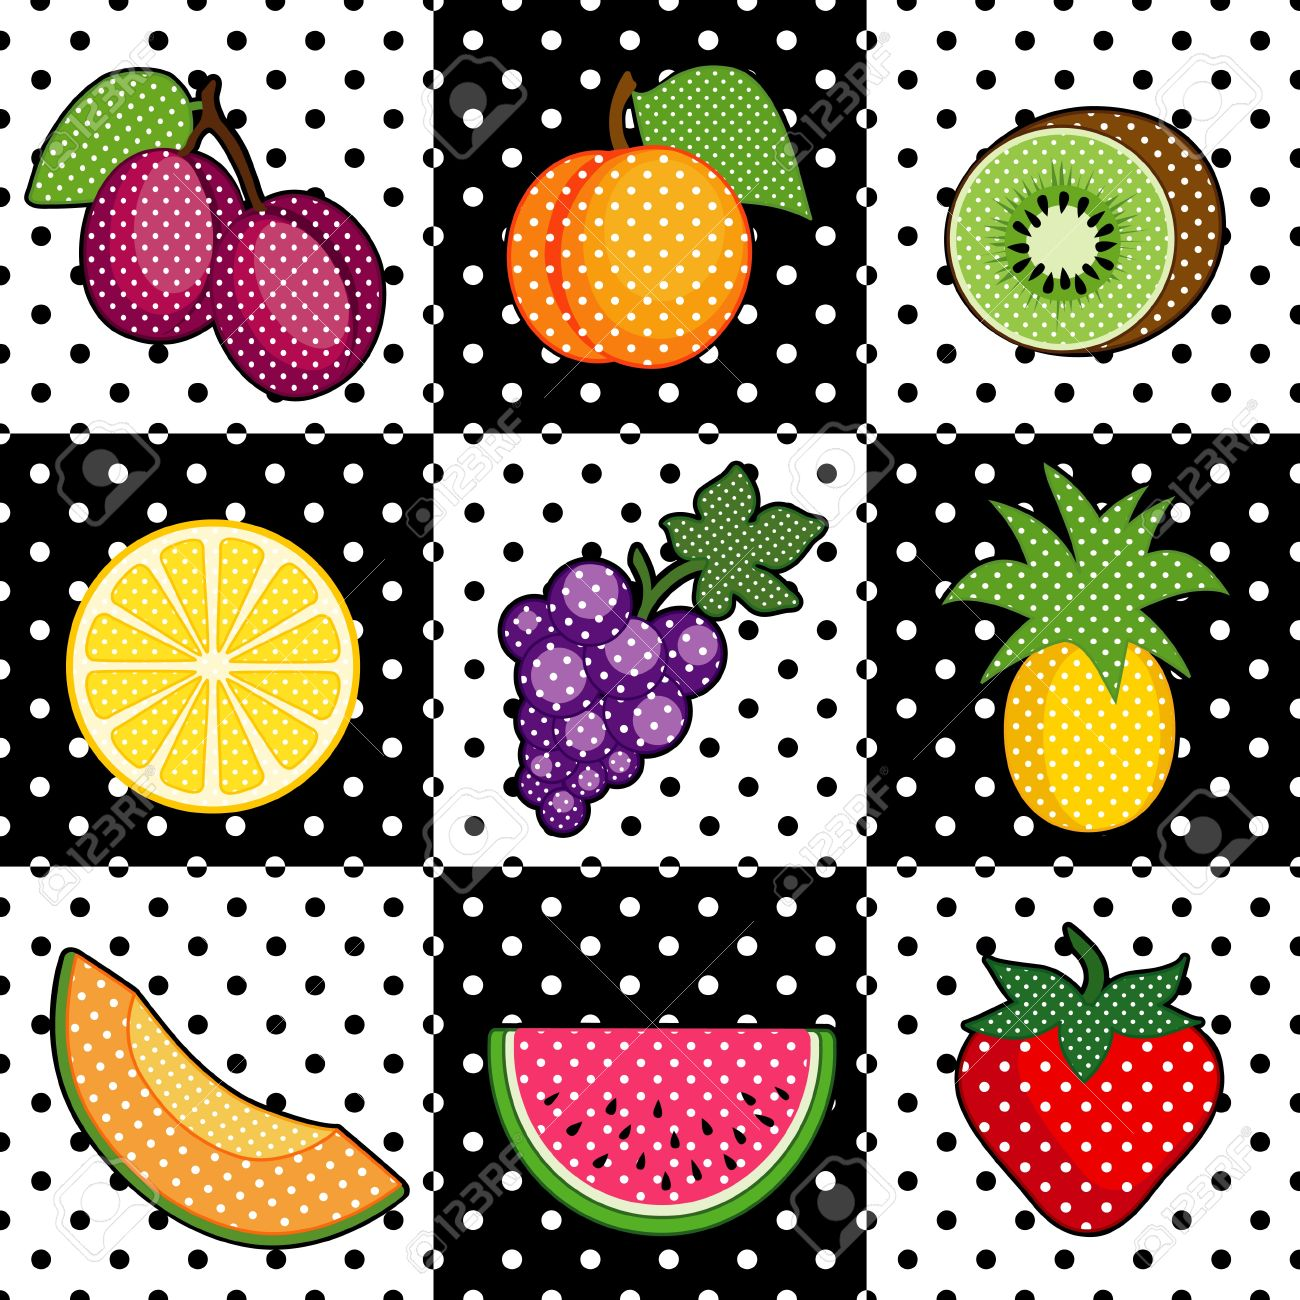 Fruit Tiles Plums, Peach, Kiwi, Lemon, Grapes, Pineapple, Cantaloupe,